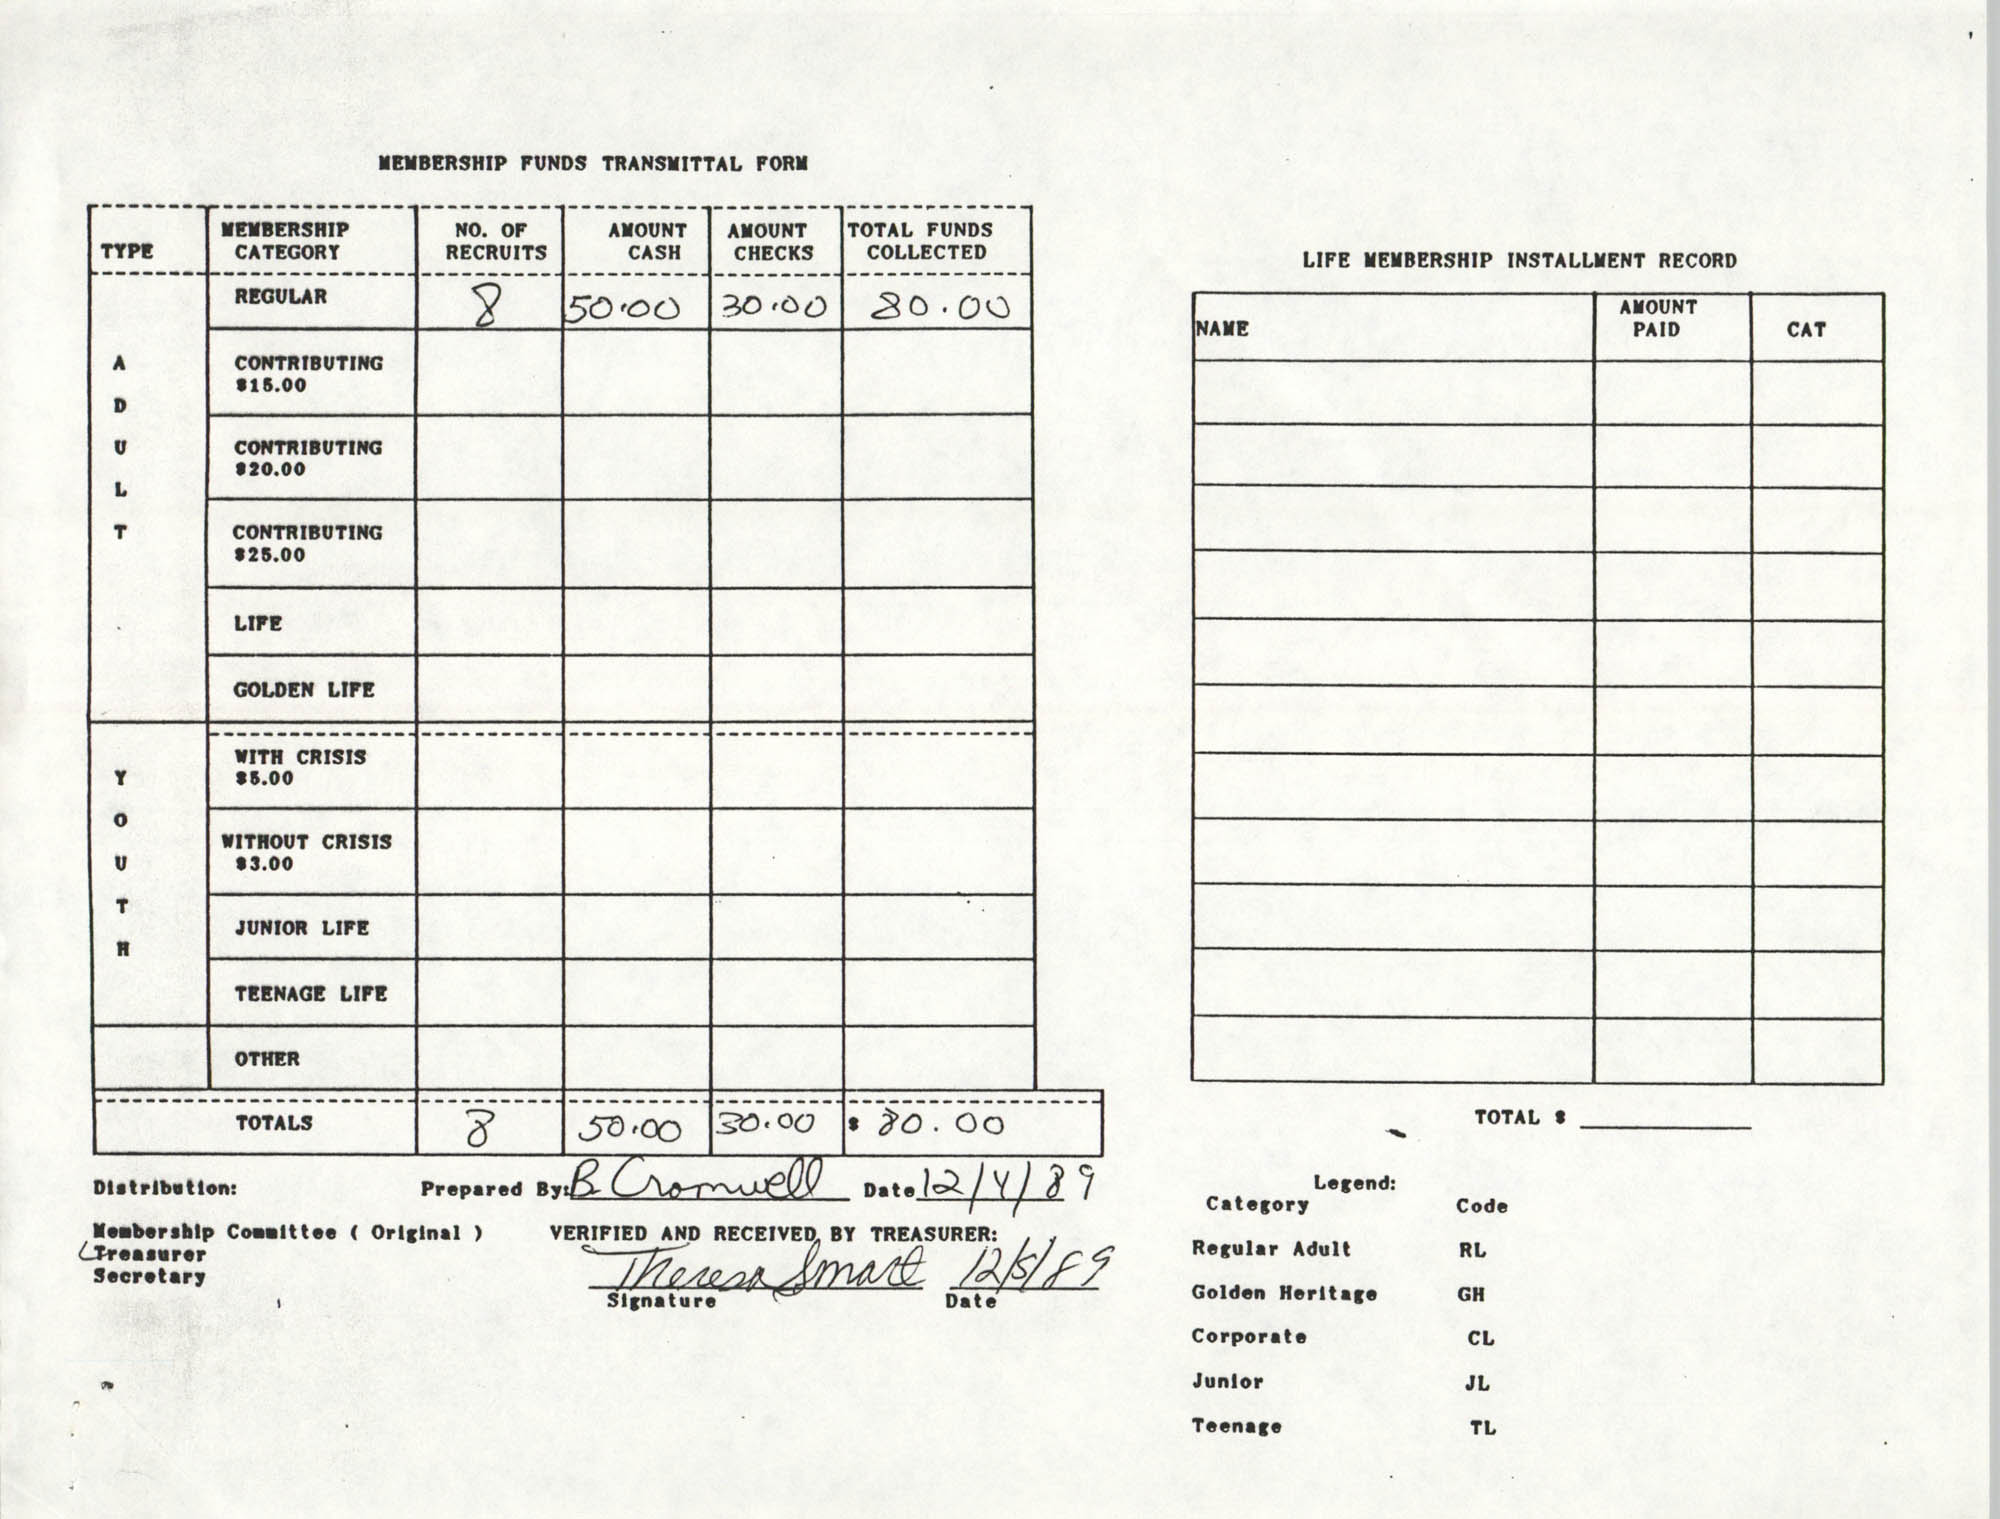 Charleston Branch of the NAACP Funds Transmittal Forms, December 1989, Page 1